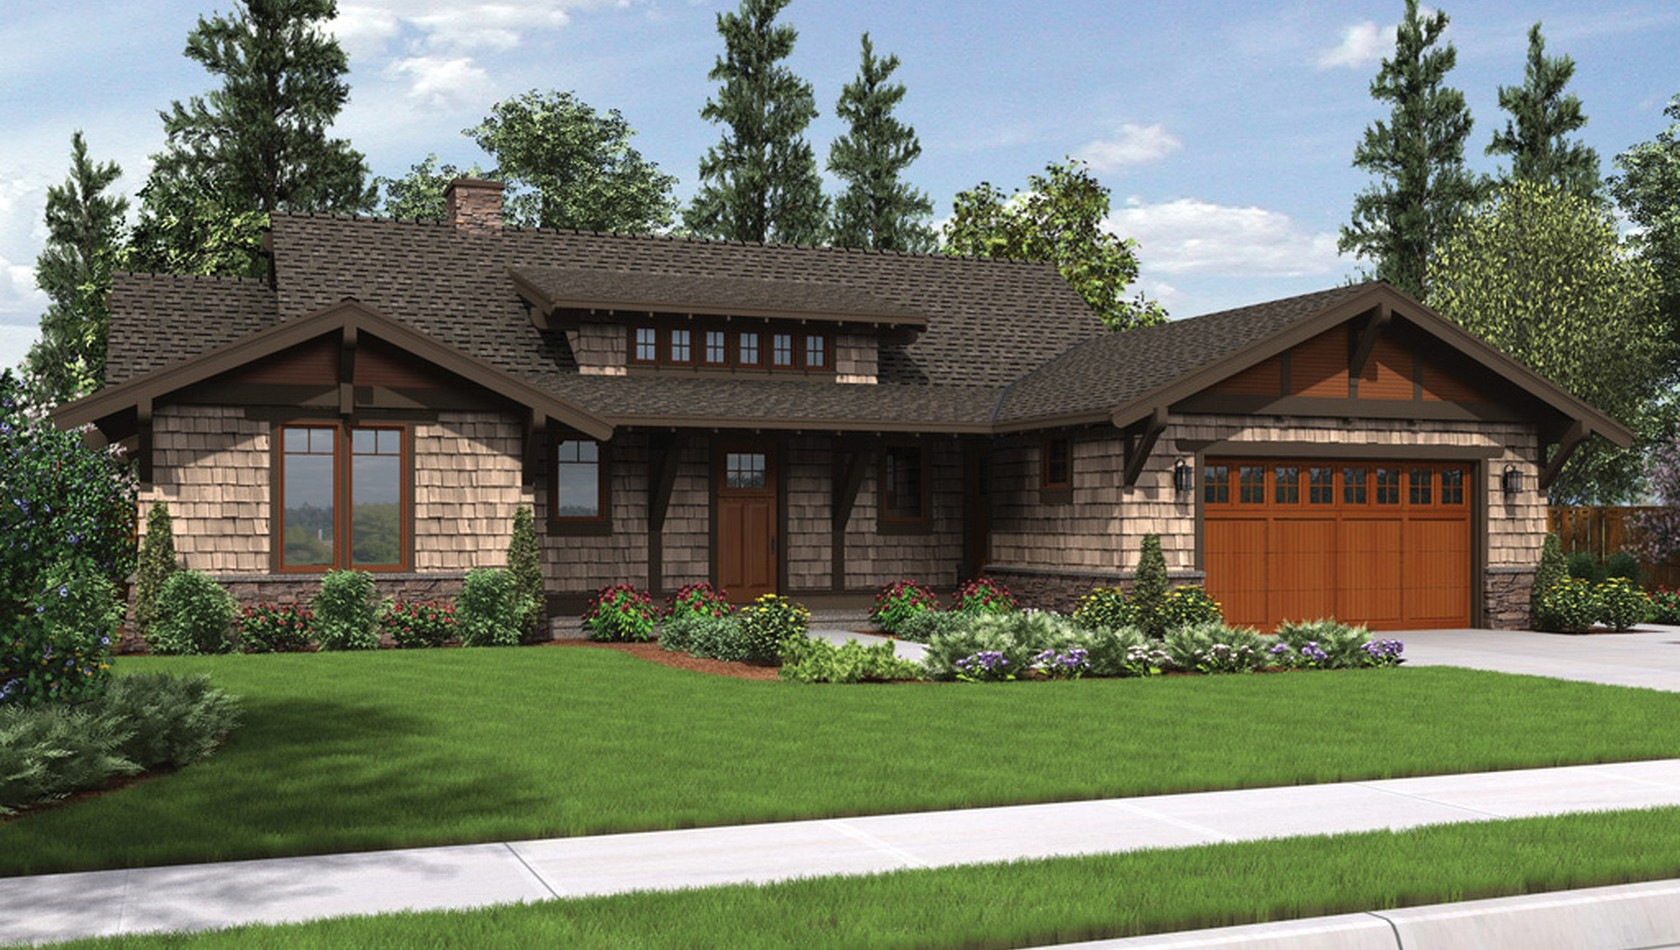 Main image for house plan 1170: The Meriwether